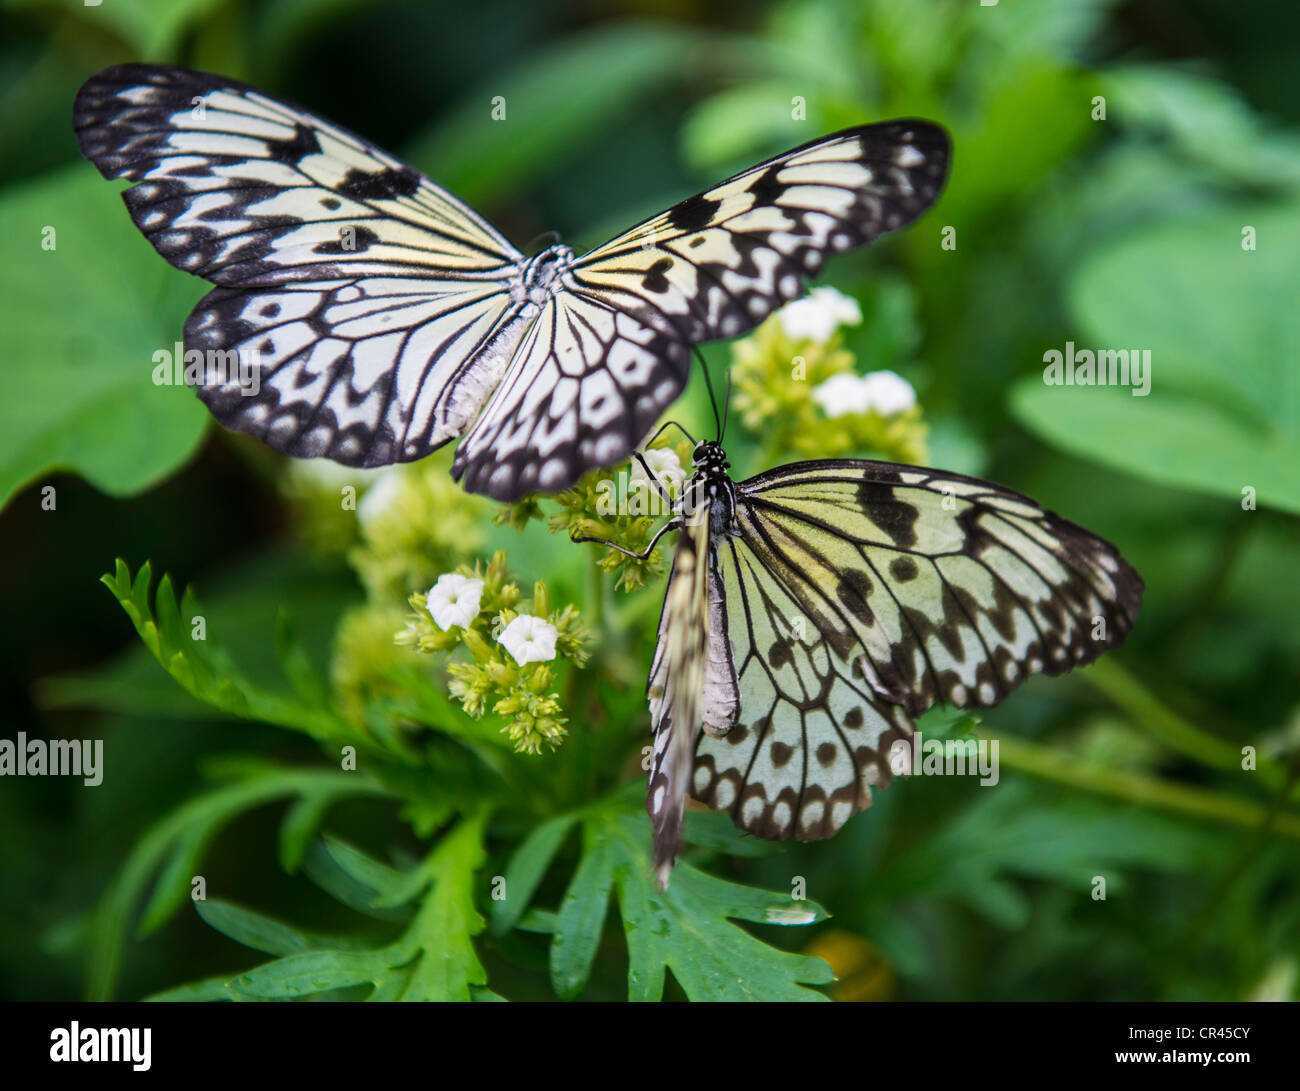 The Butterfly Farm, Stratford upon Avon, England - Stock Image